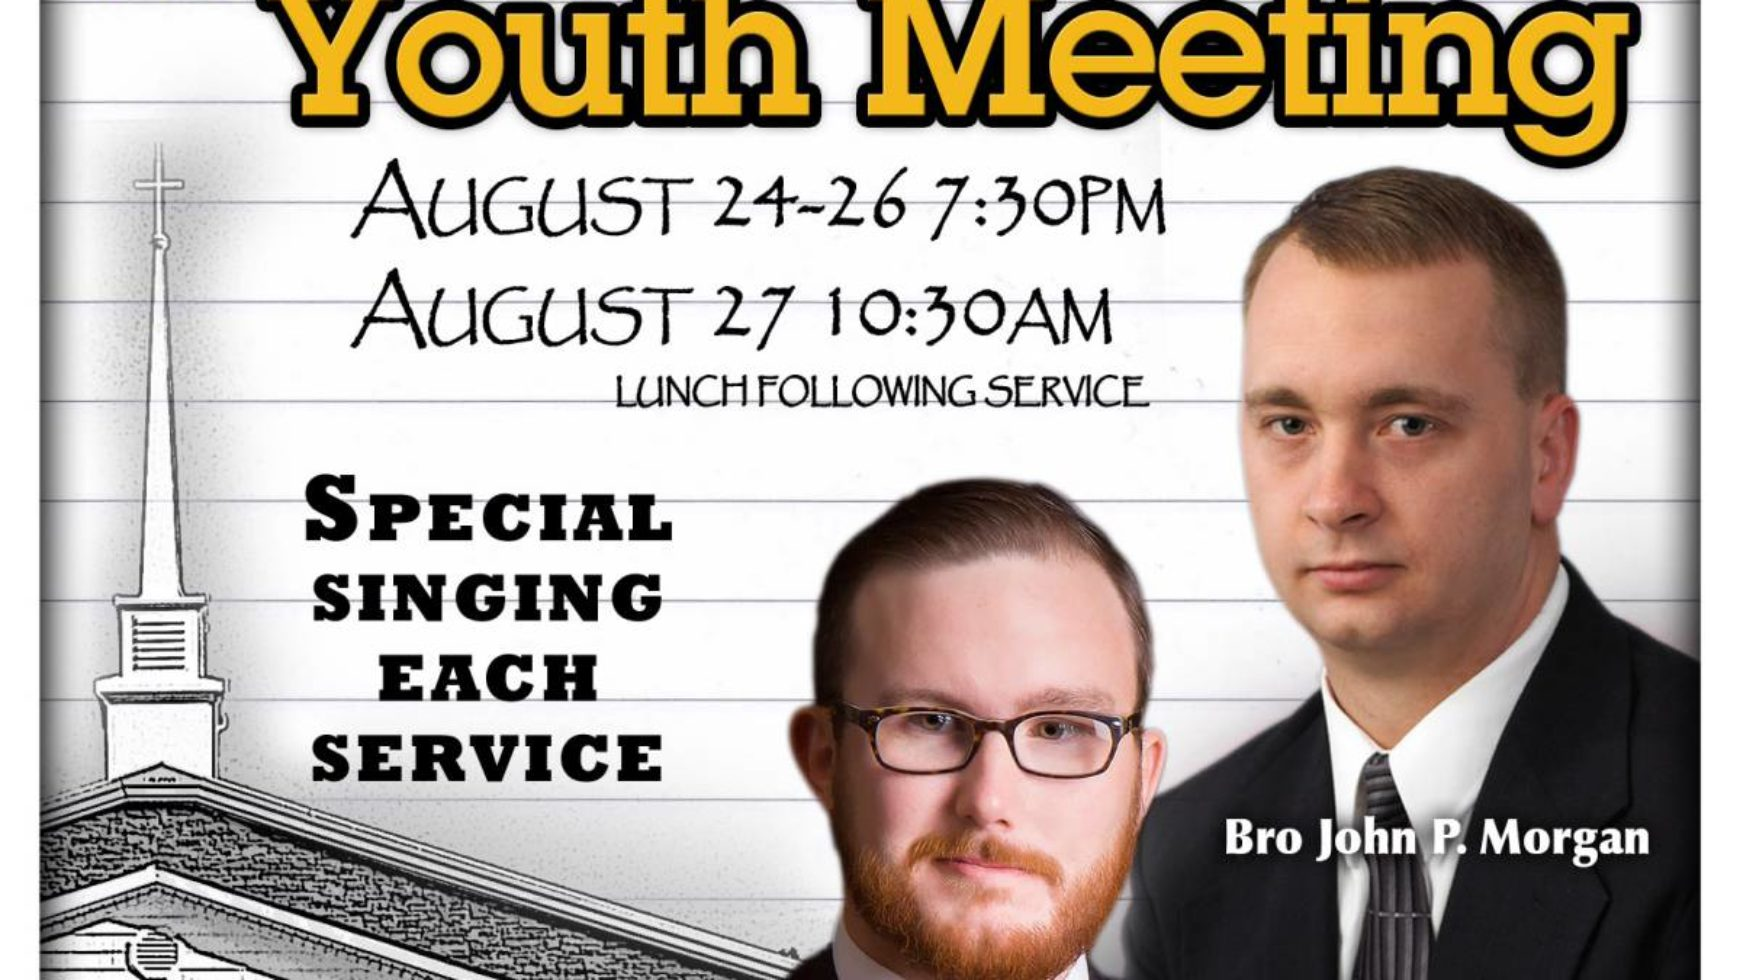 Area Meeting: Youth Meeting – White Graves Baptist Church – Ranger, Ga